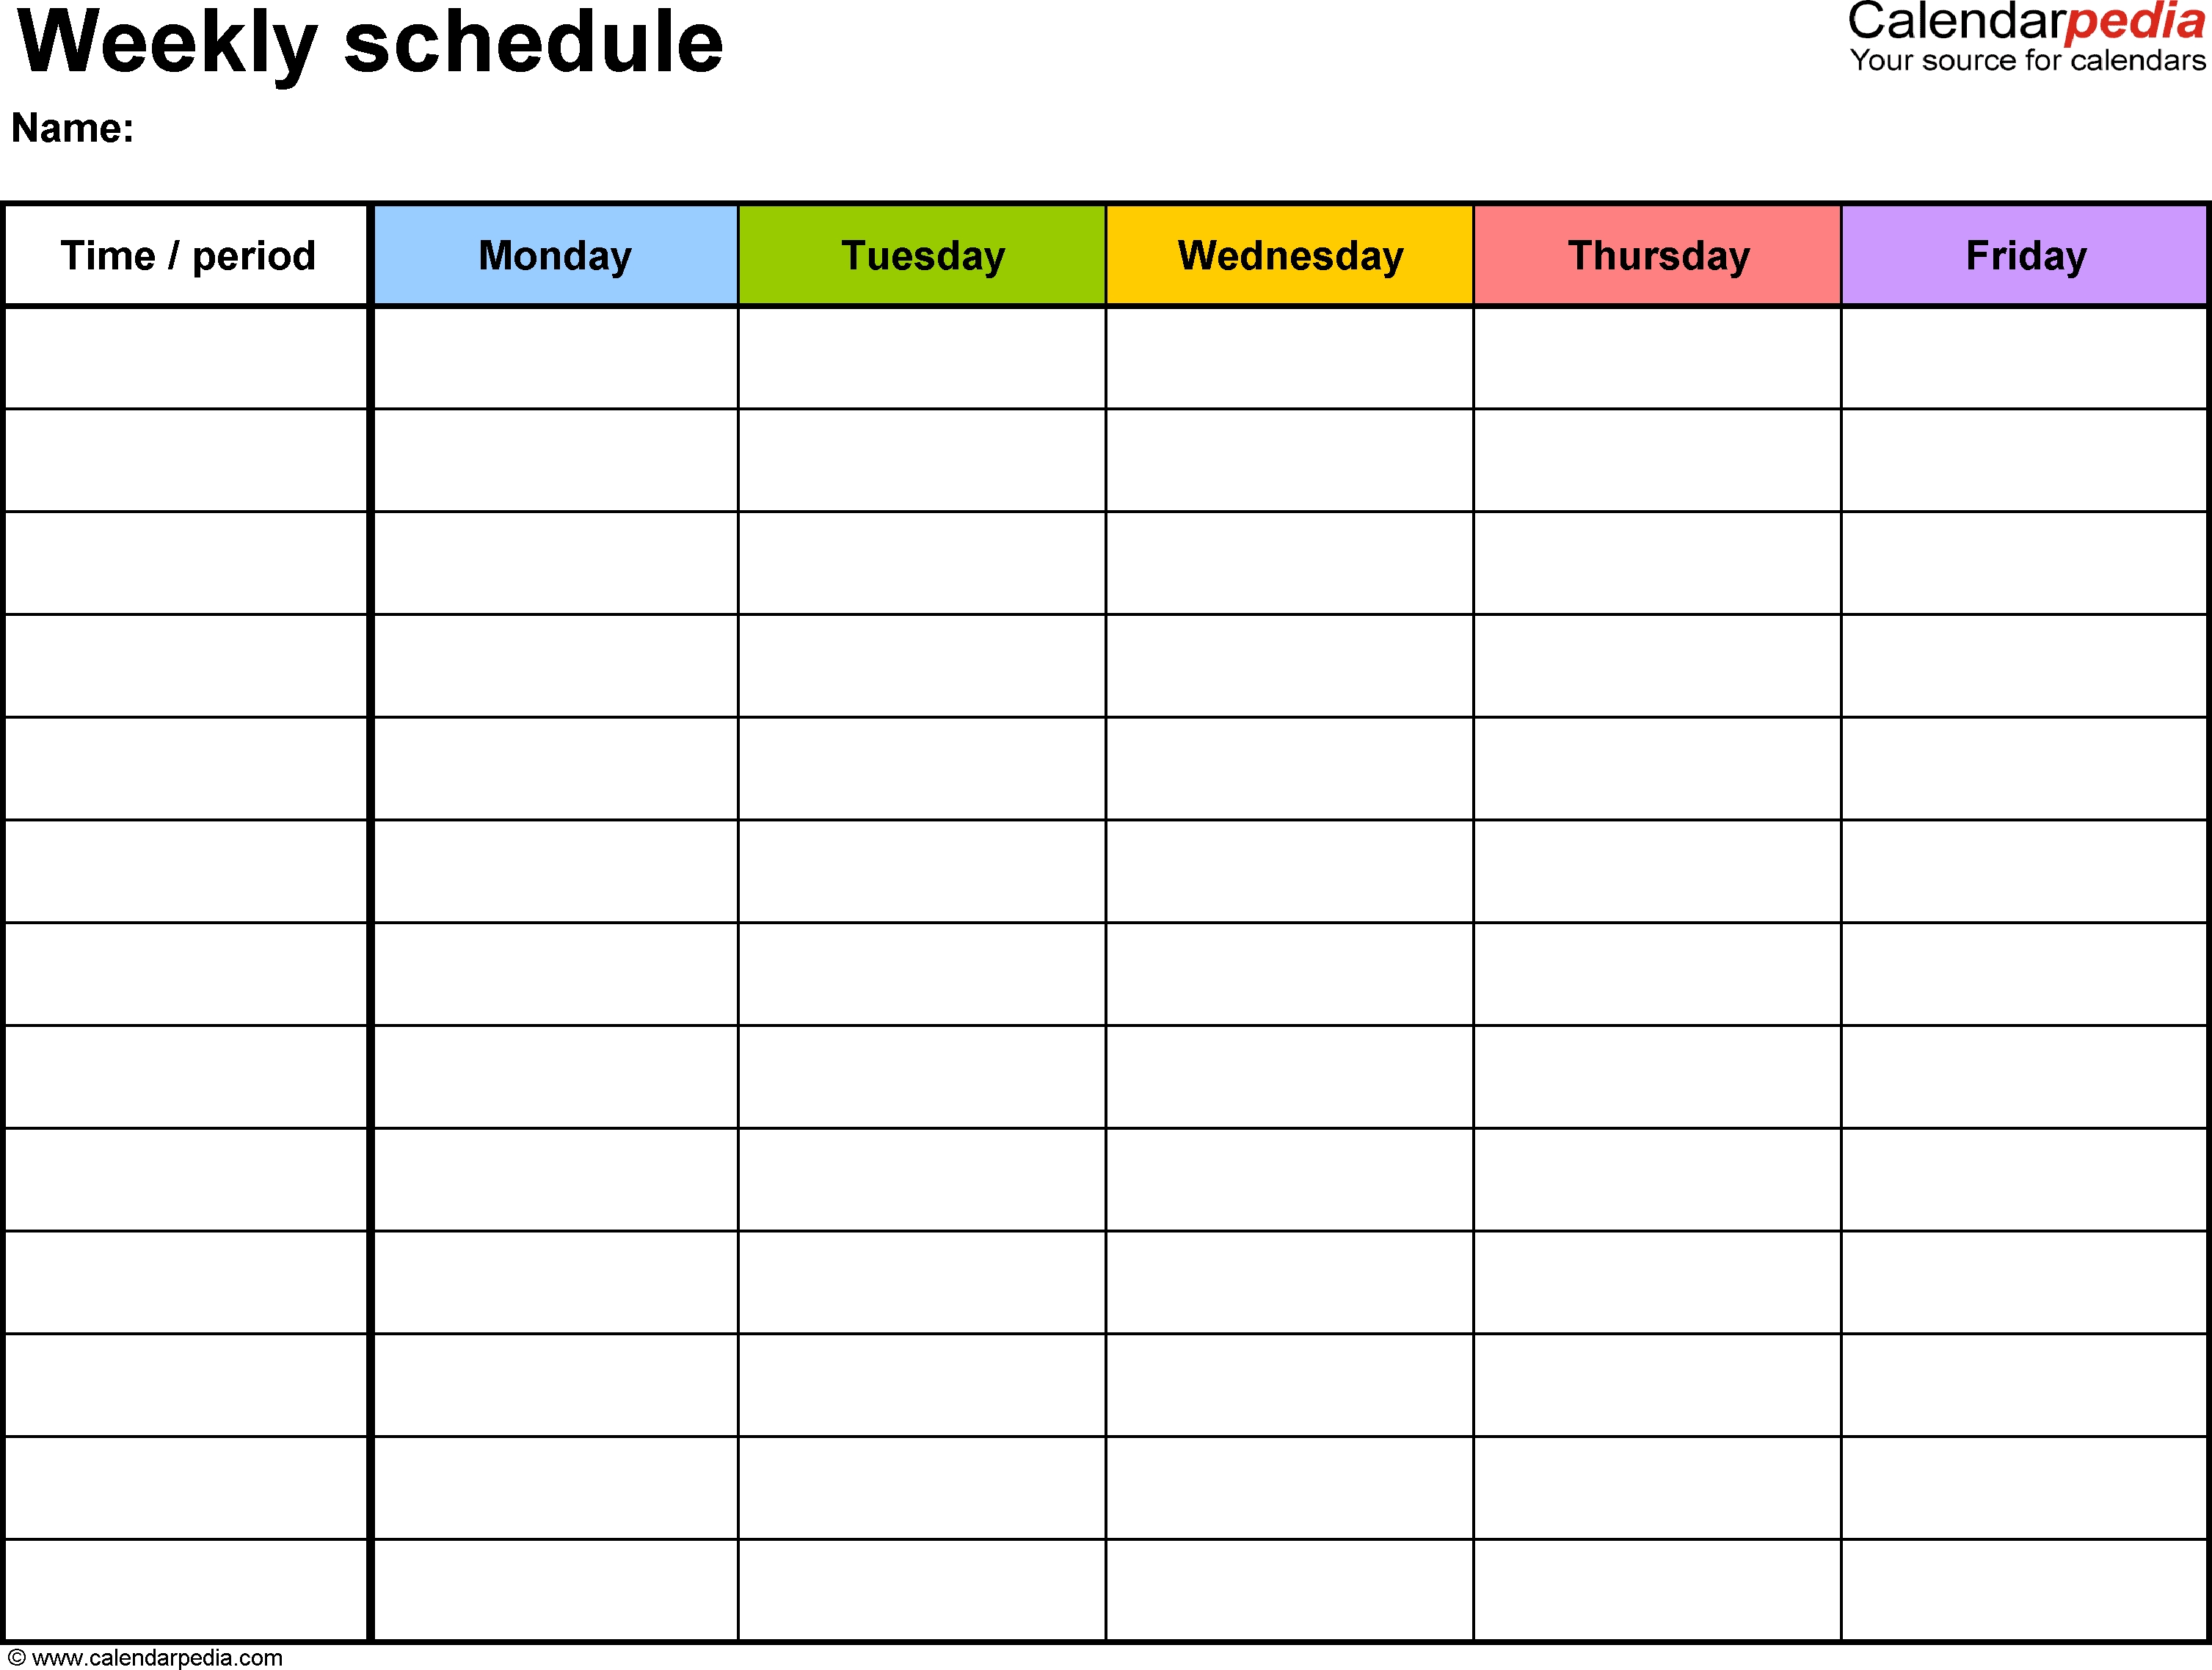 Weekly Schedule Template For Word Version 1: Landscape, 1-Monday To Friday Word Template